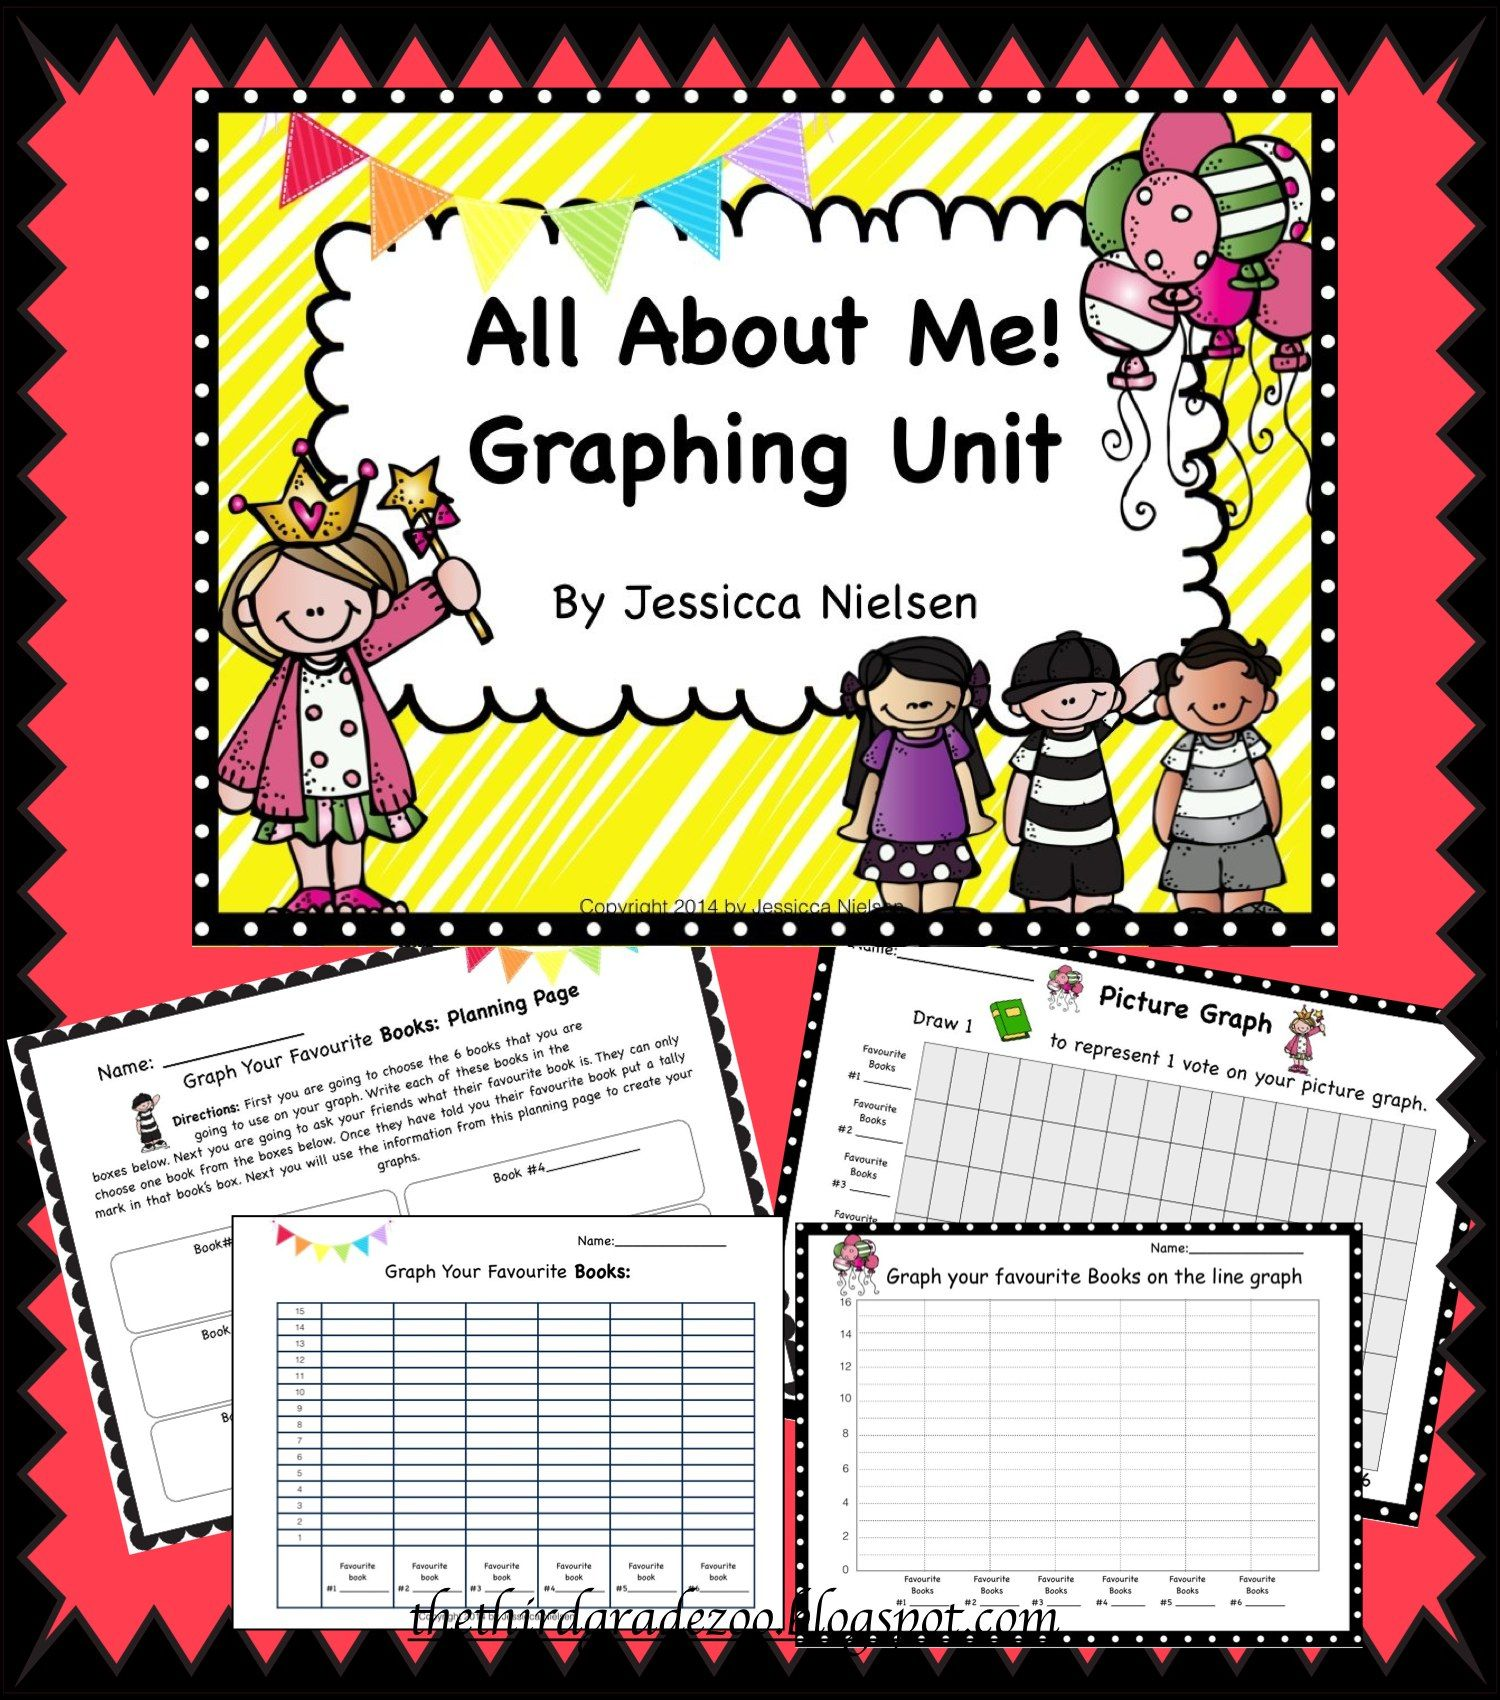 All About Me Graphing Unit